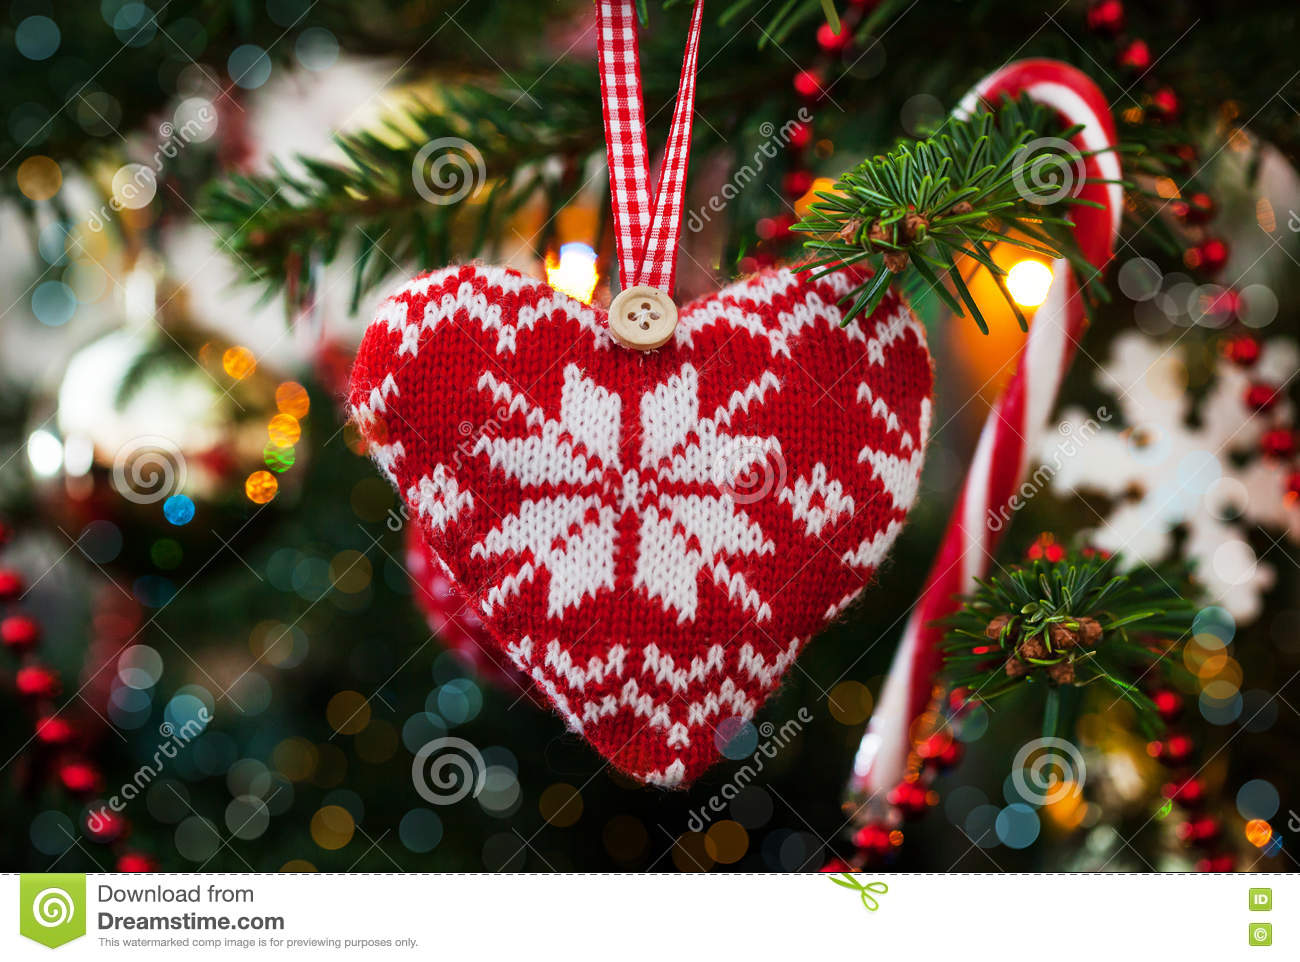 Christmas decorative knitted heart